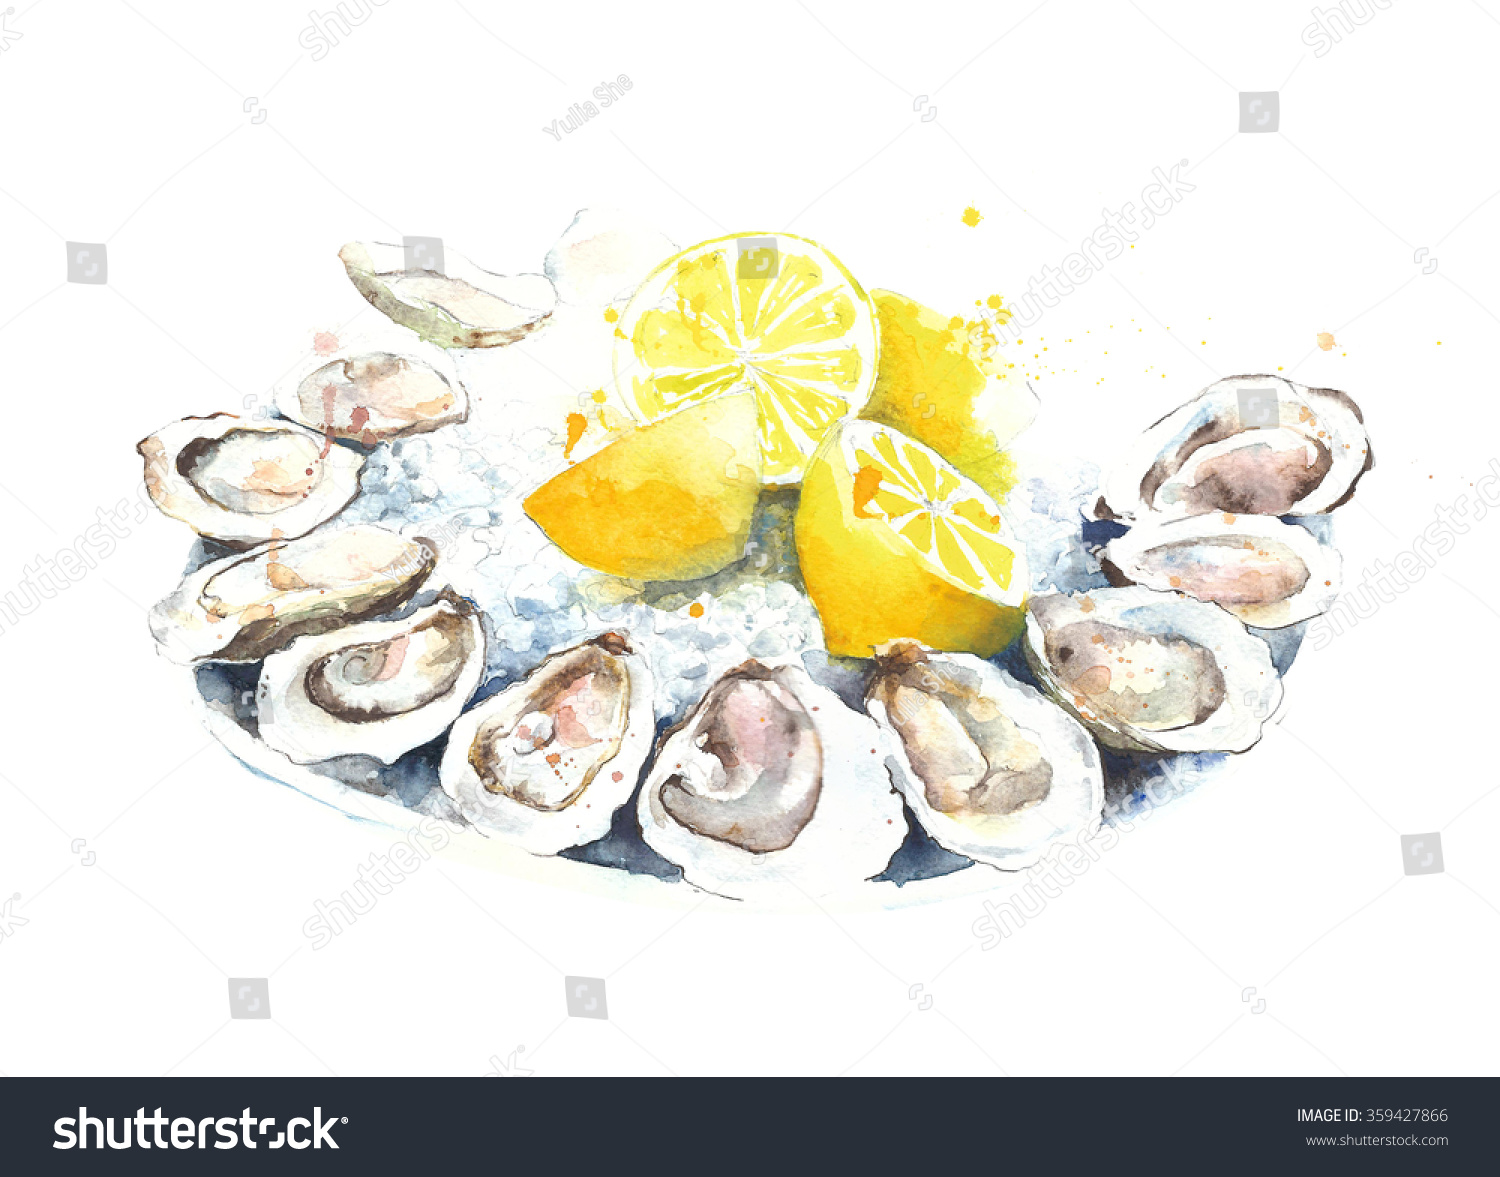 Oyster clipart watercolor. Oysters fresh on plate banner royalty free library